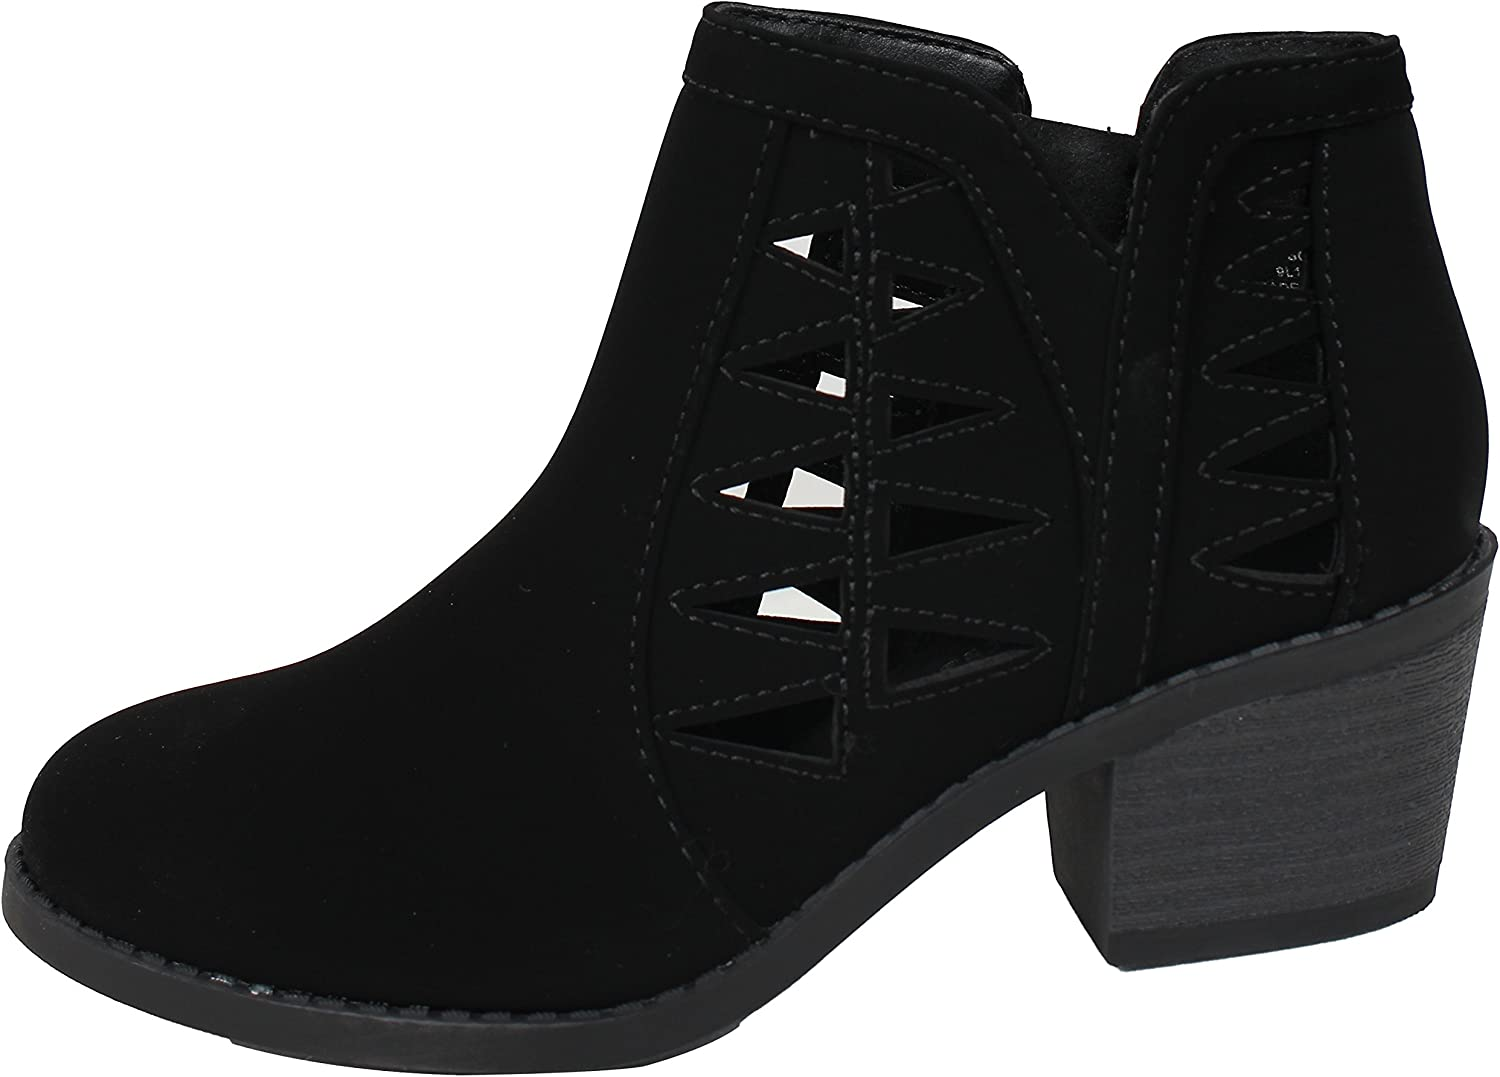 Soda Girl's Triangle Cutout Side Chunky Stacked Heel Ankle Boot